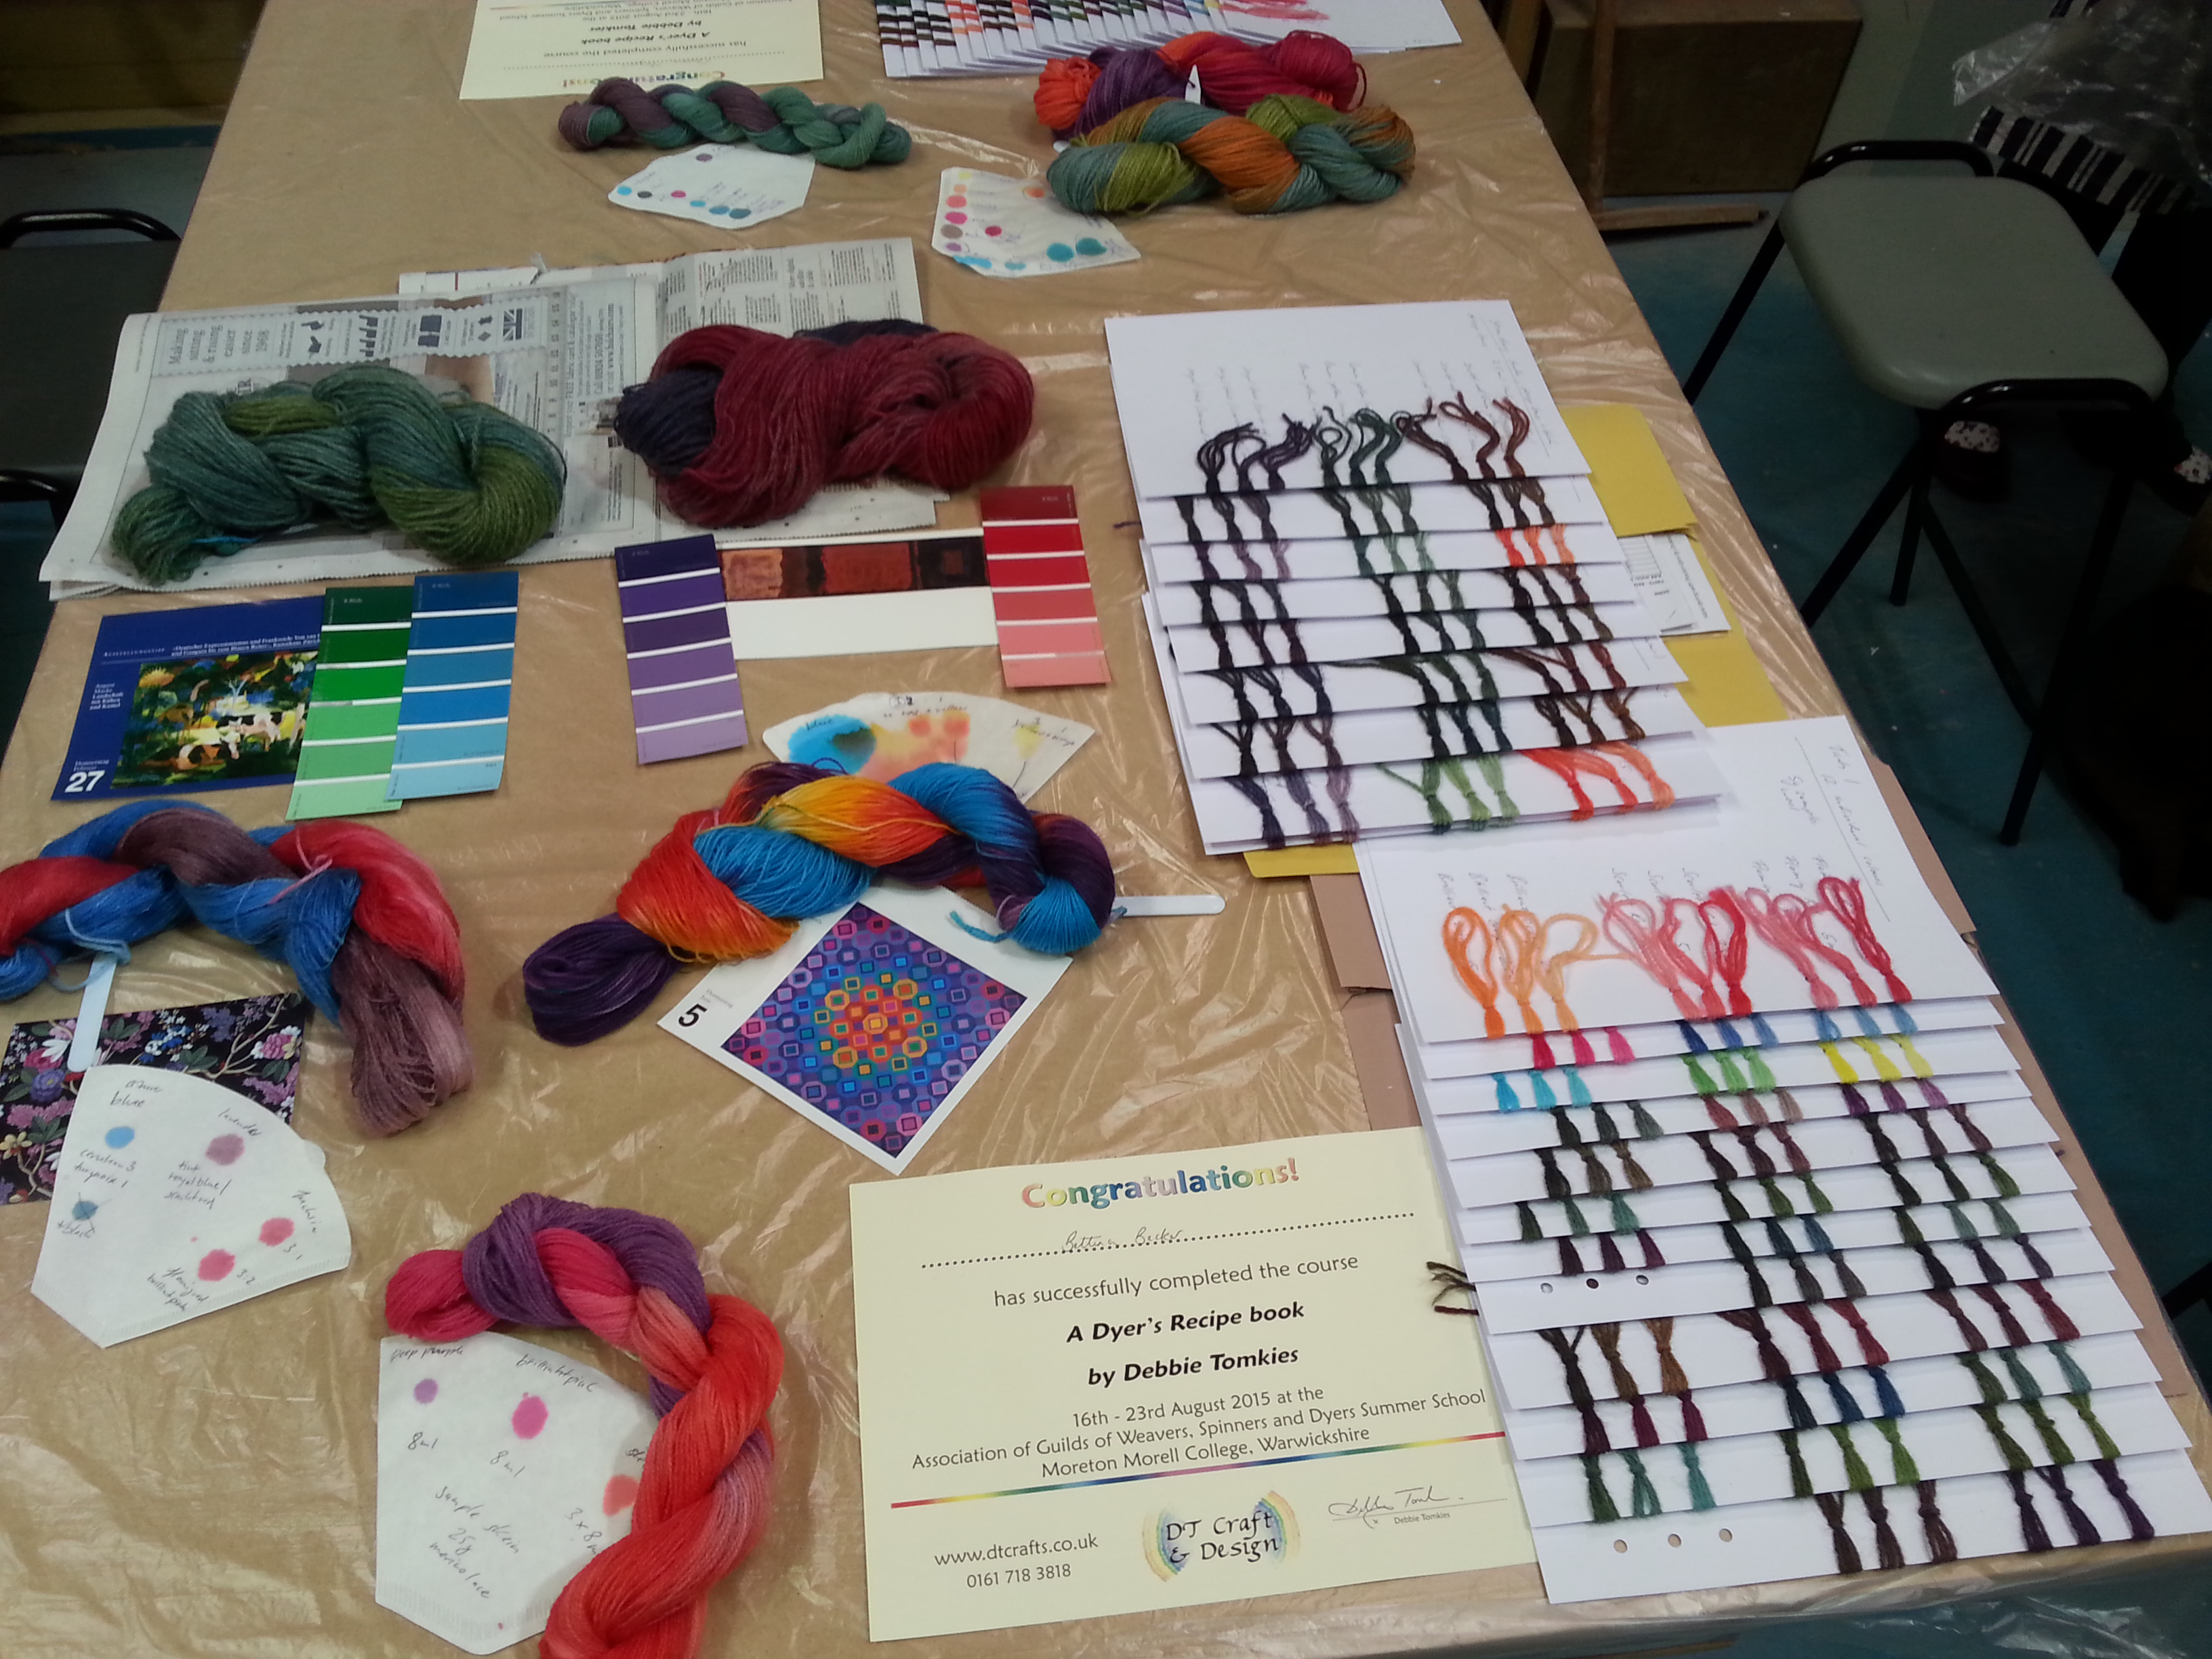 Online Dyeing & Textiles Courses - samples from debbie tomkies dyers recipe book workshop course